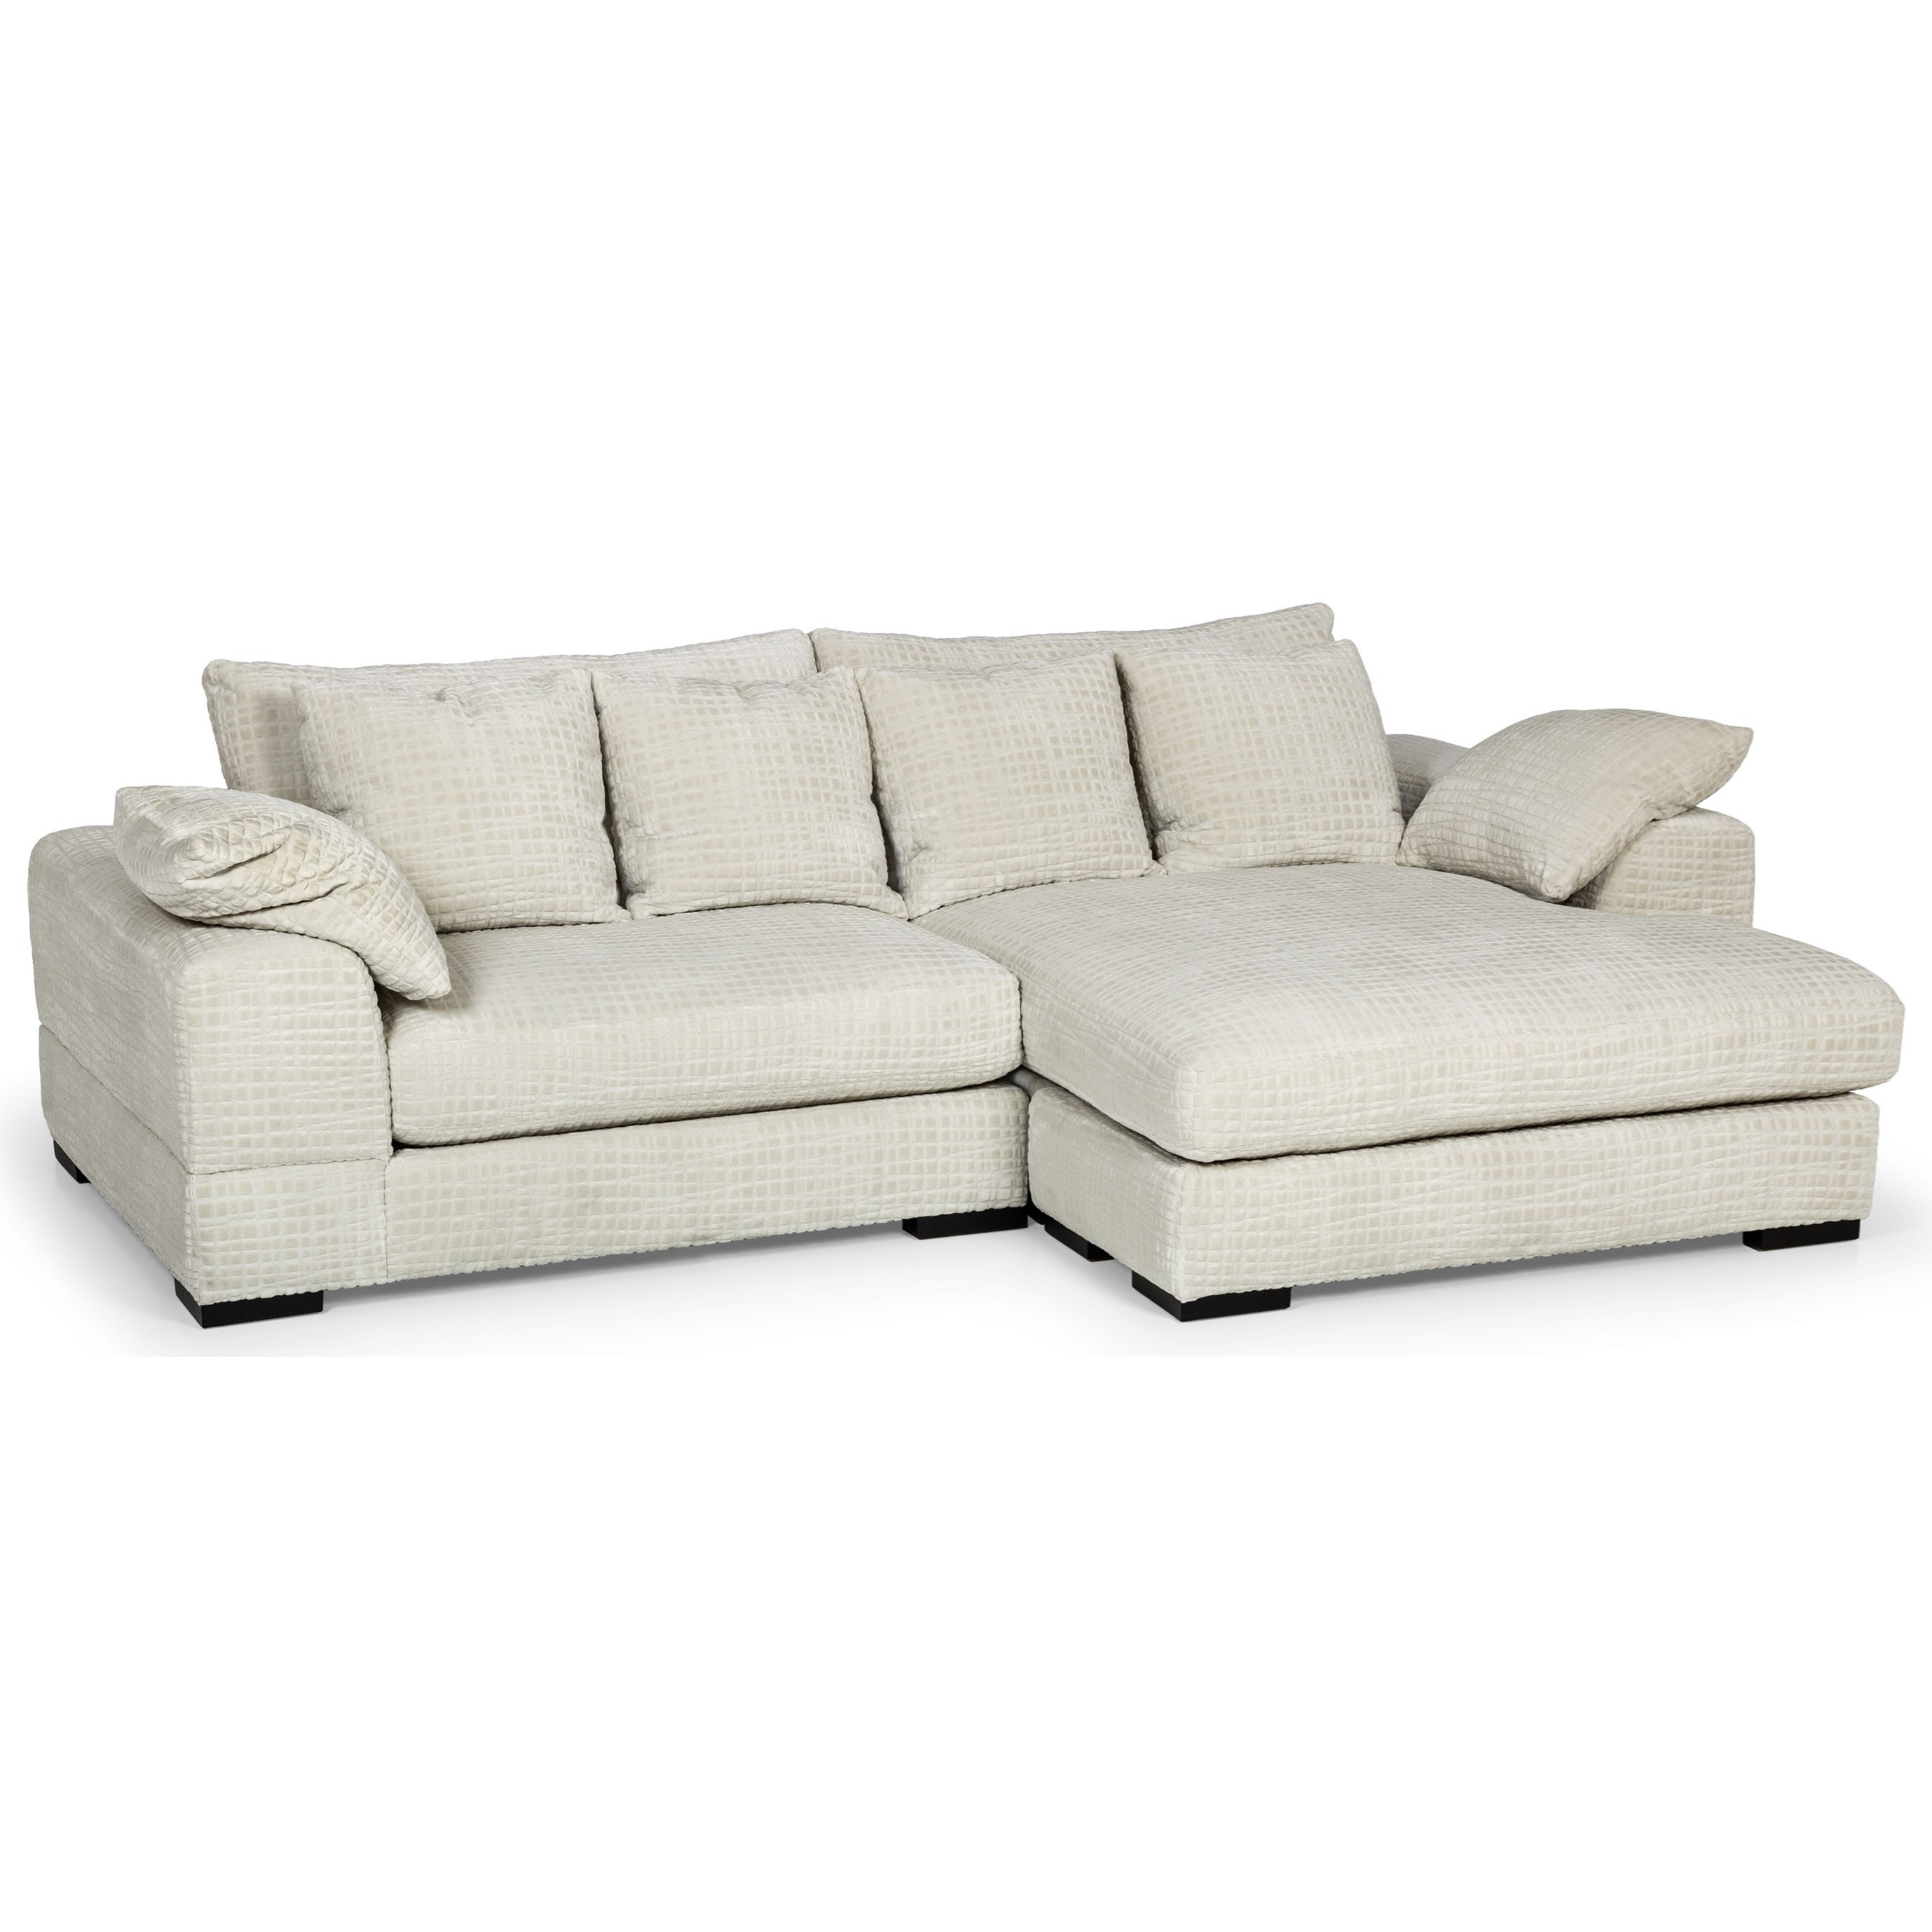 480 2-Piece Sectional Sofa w/ RAF Chaise by Stanton at Wilson's Furniture